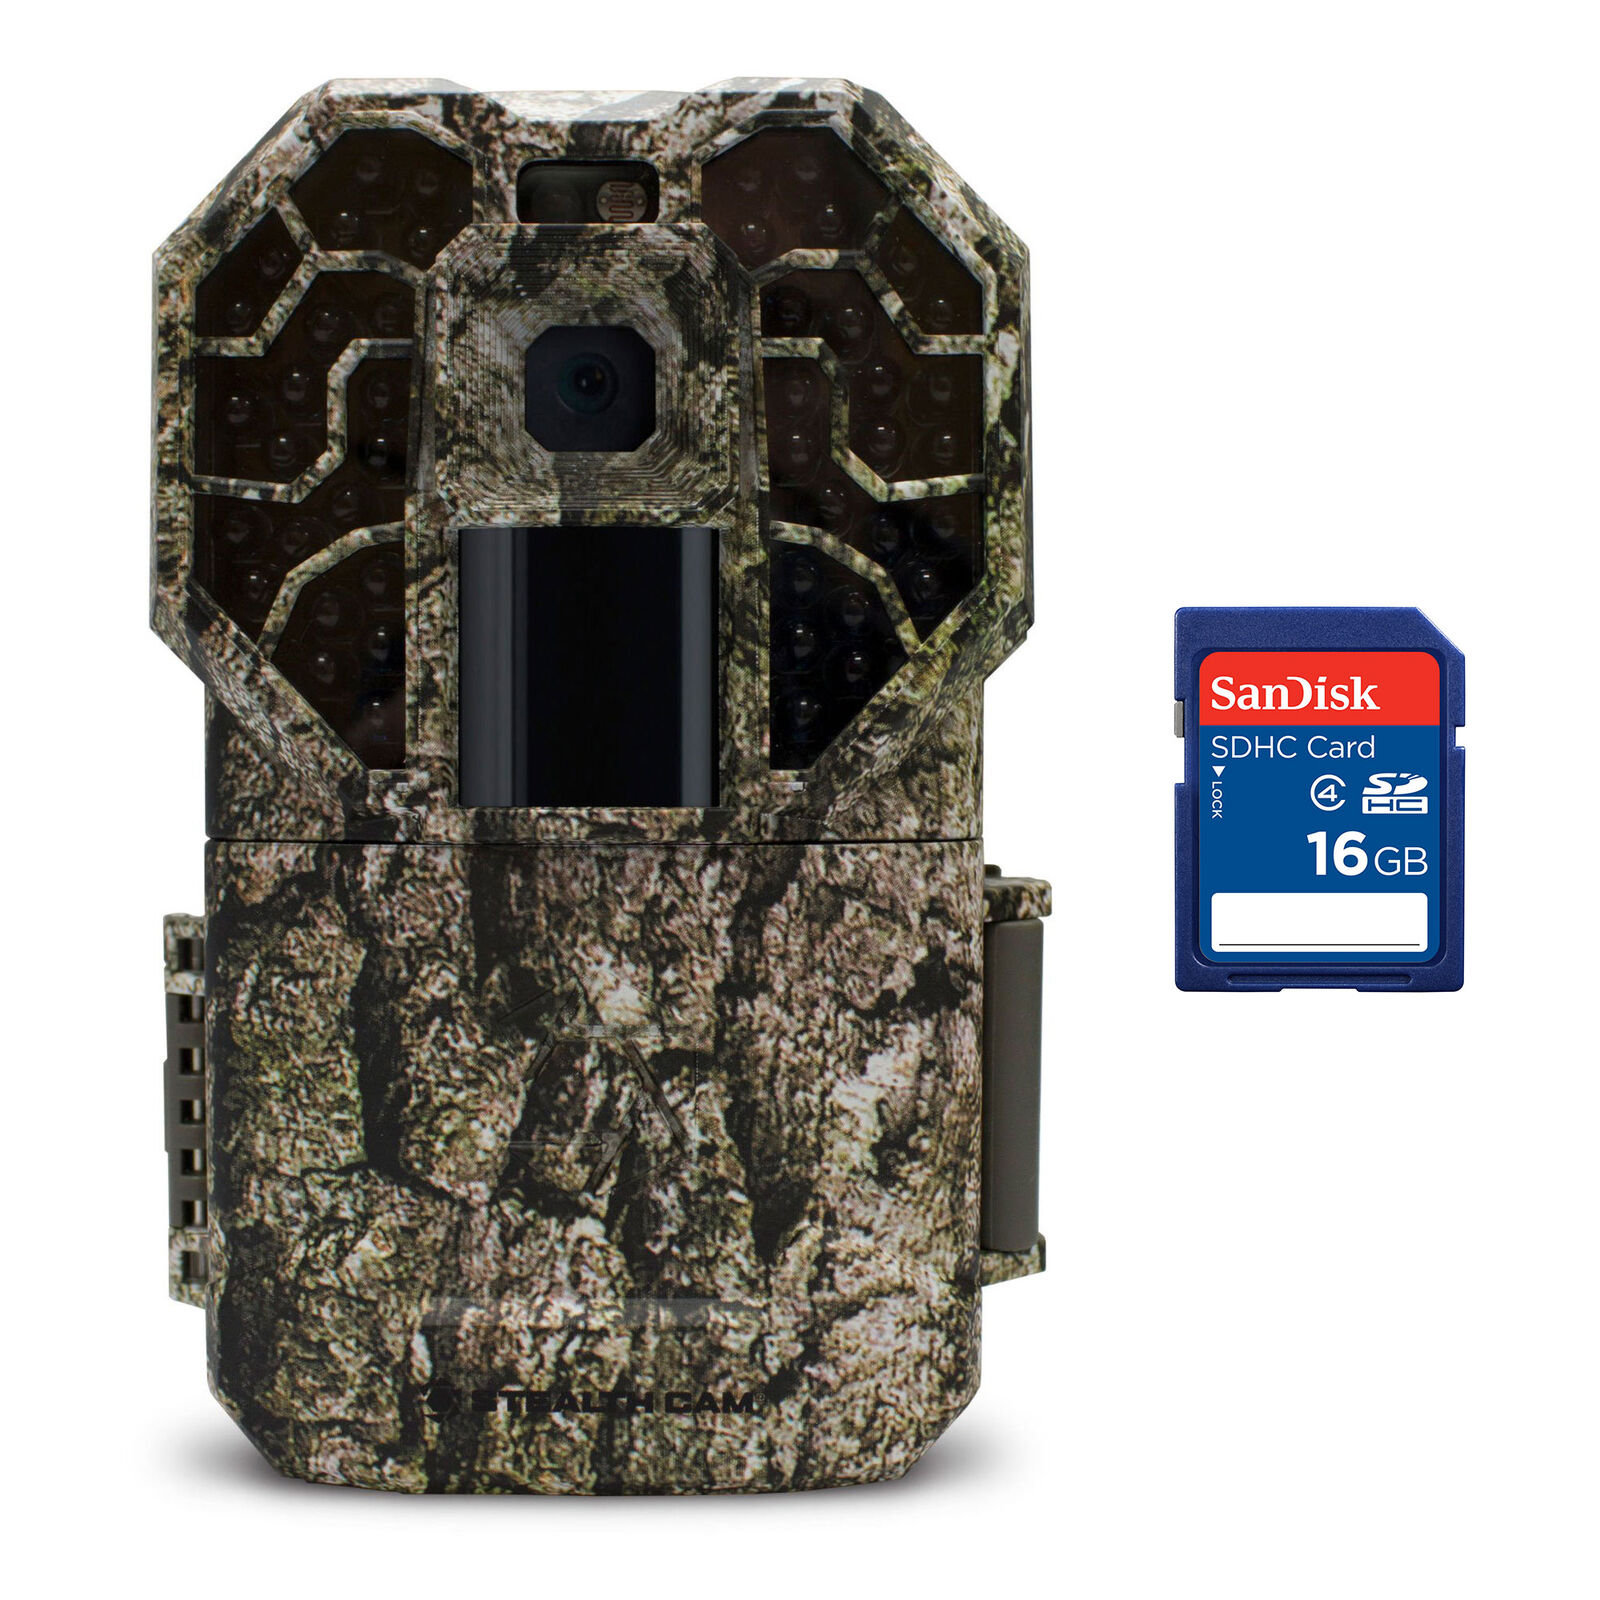 Stealth Cam G  Series Camouflage Wildlife Hunting Trail Camera + 16GB SD Card  first-class quality